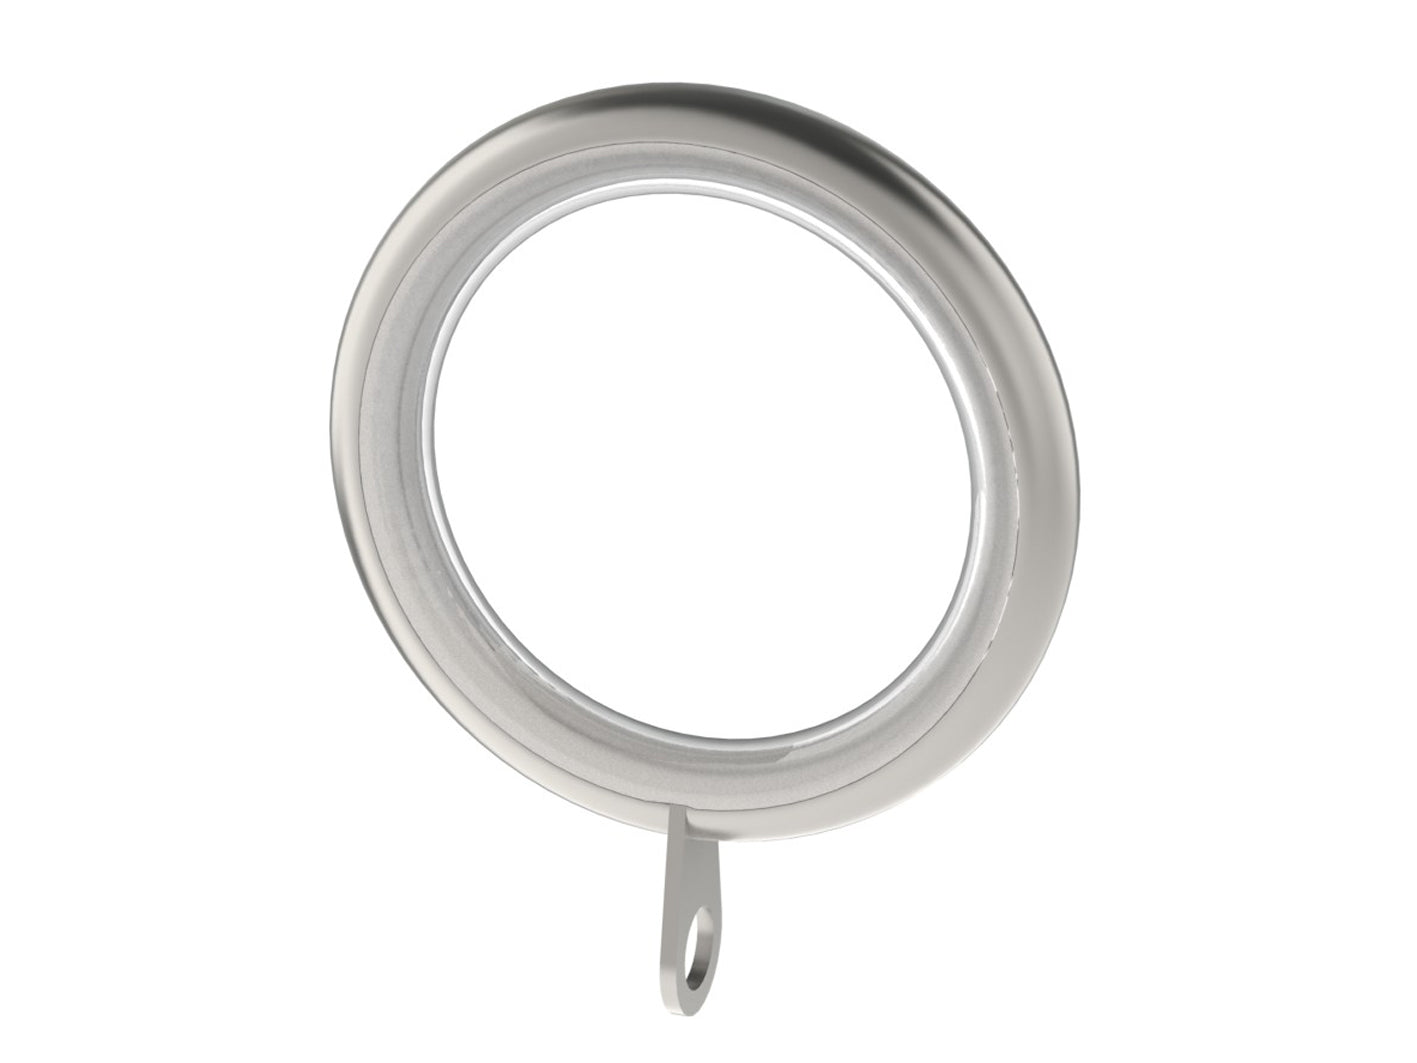 stainless steel curtain rings for 19mm curtain pole by Walcot House